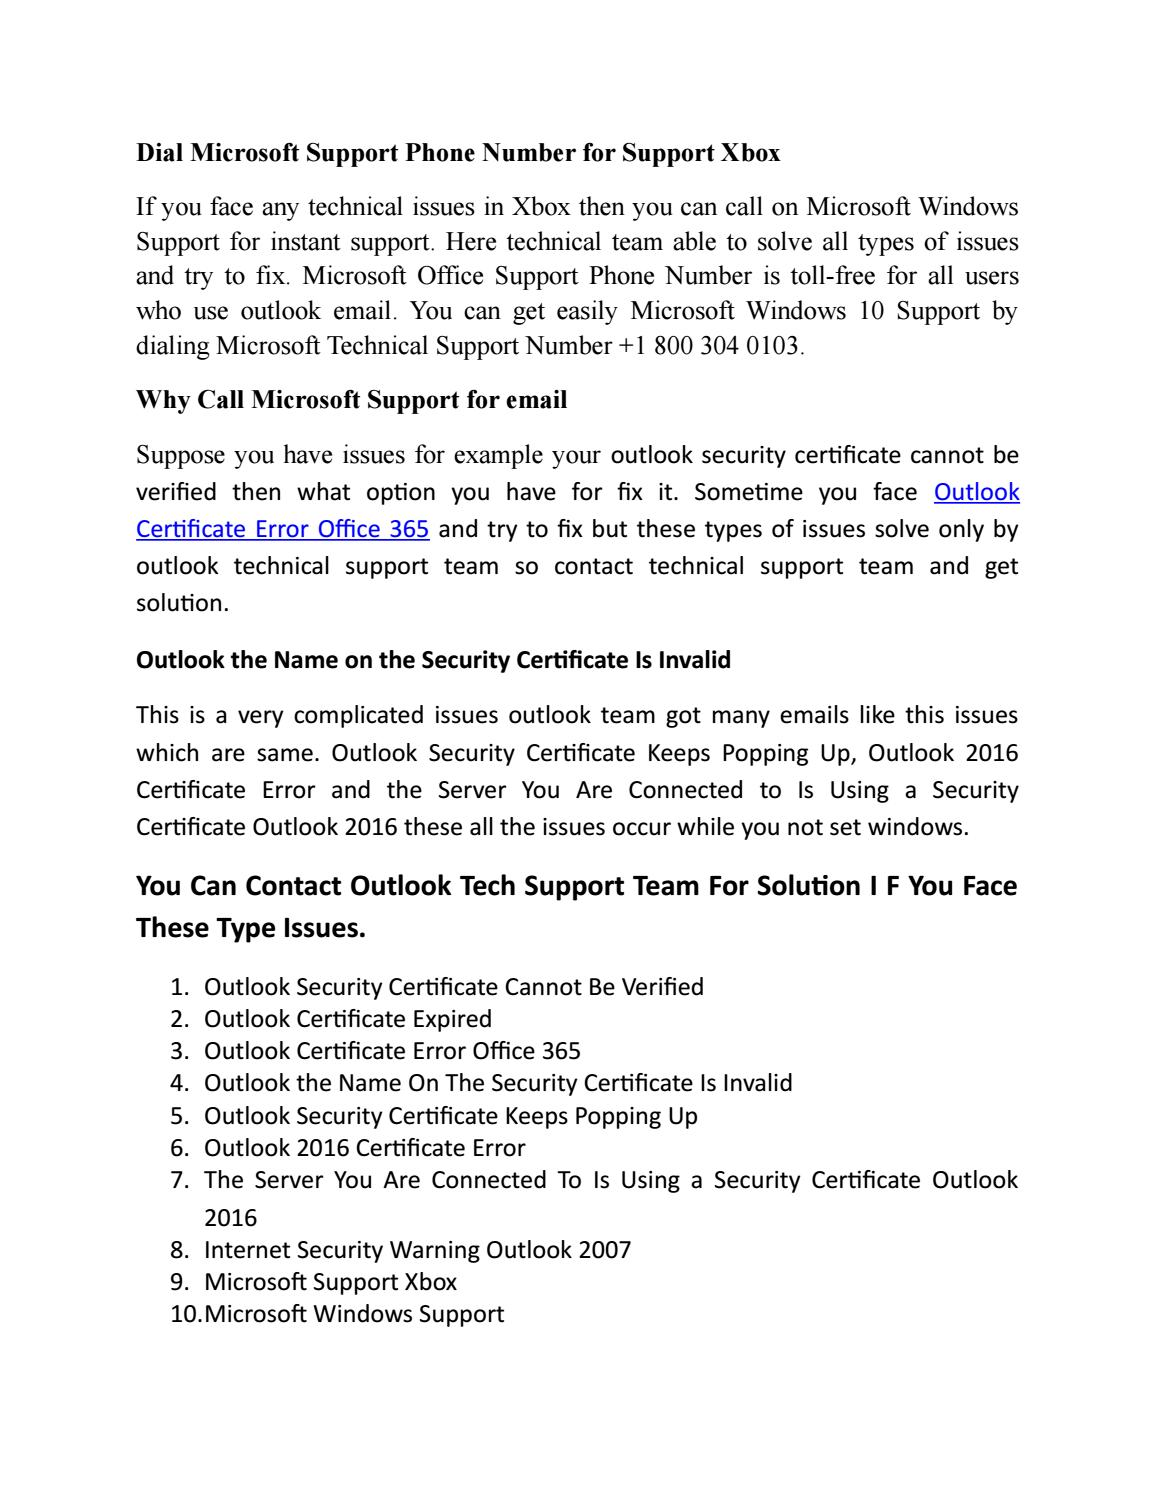 Dial Microsoft Support Phone Number For Support Xbox By Mike Issuu